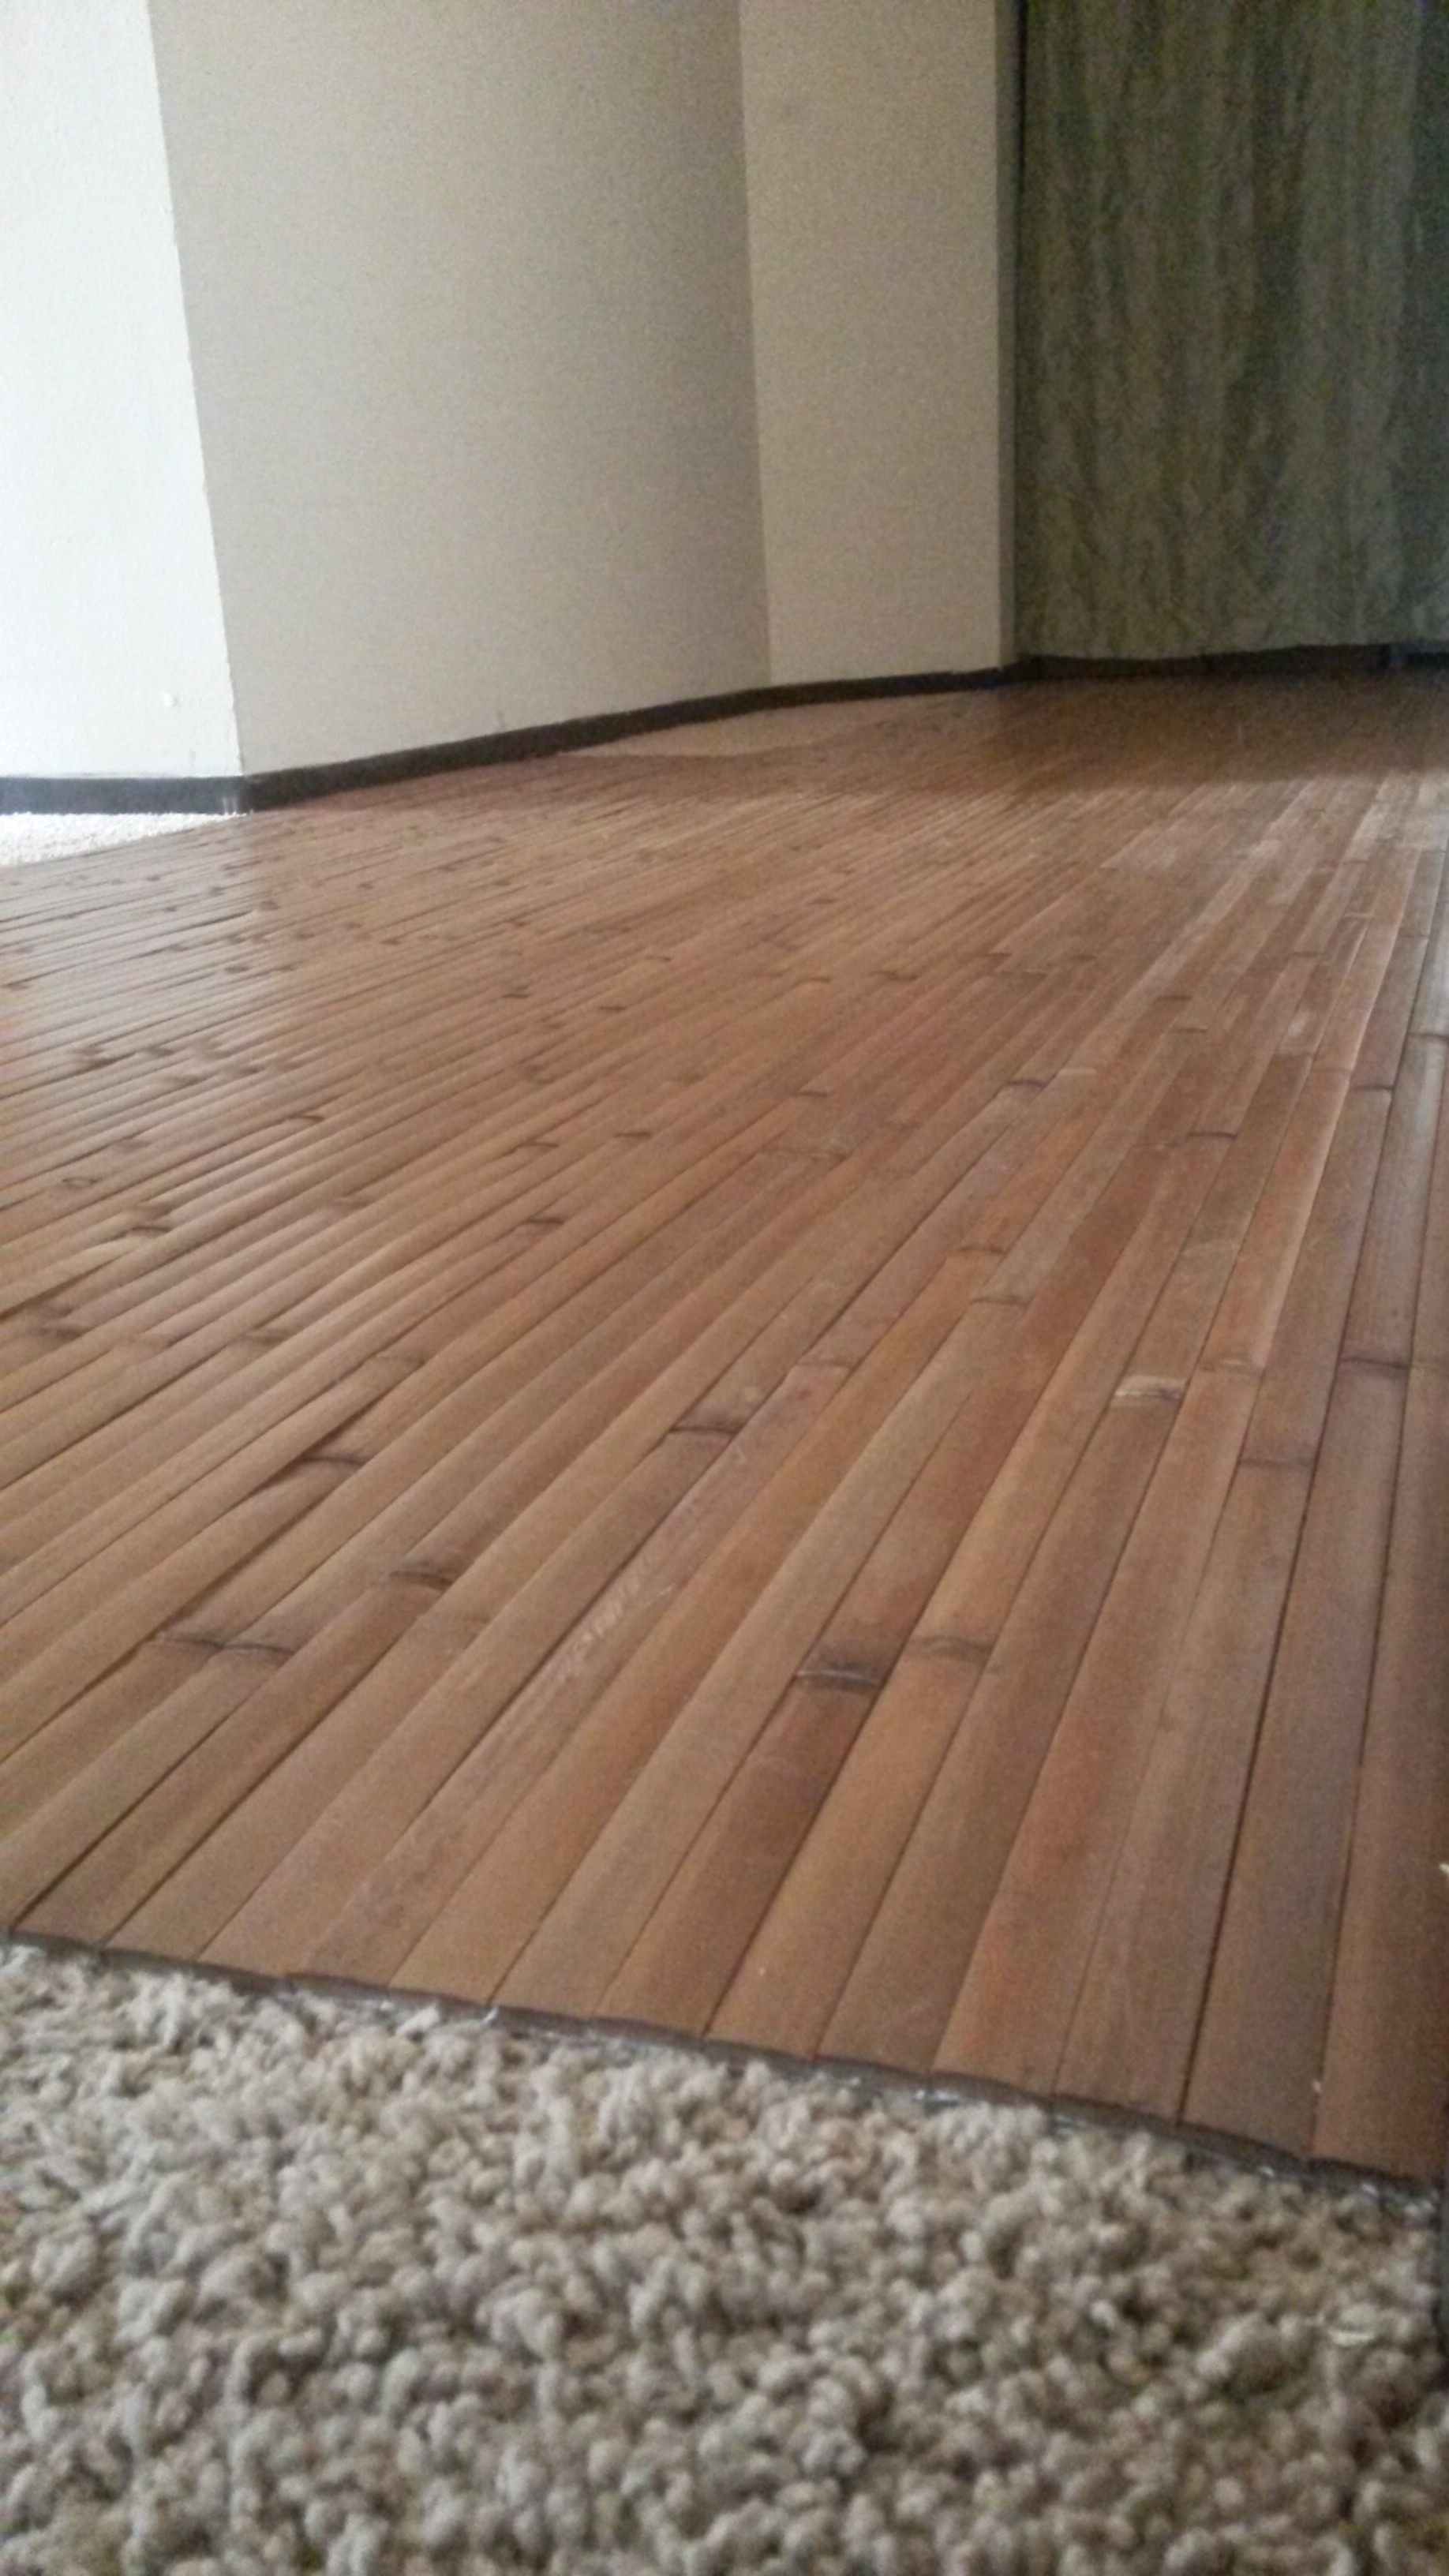 Vinyl Wood Flooring Over Carpet1836 X 3264